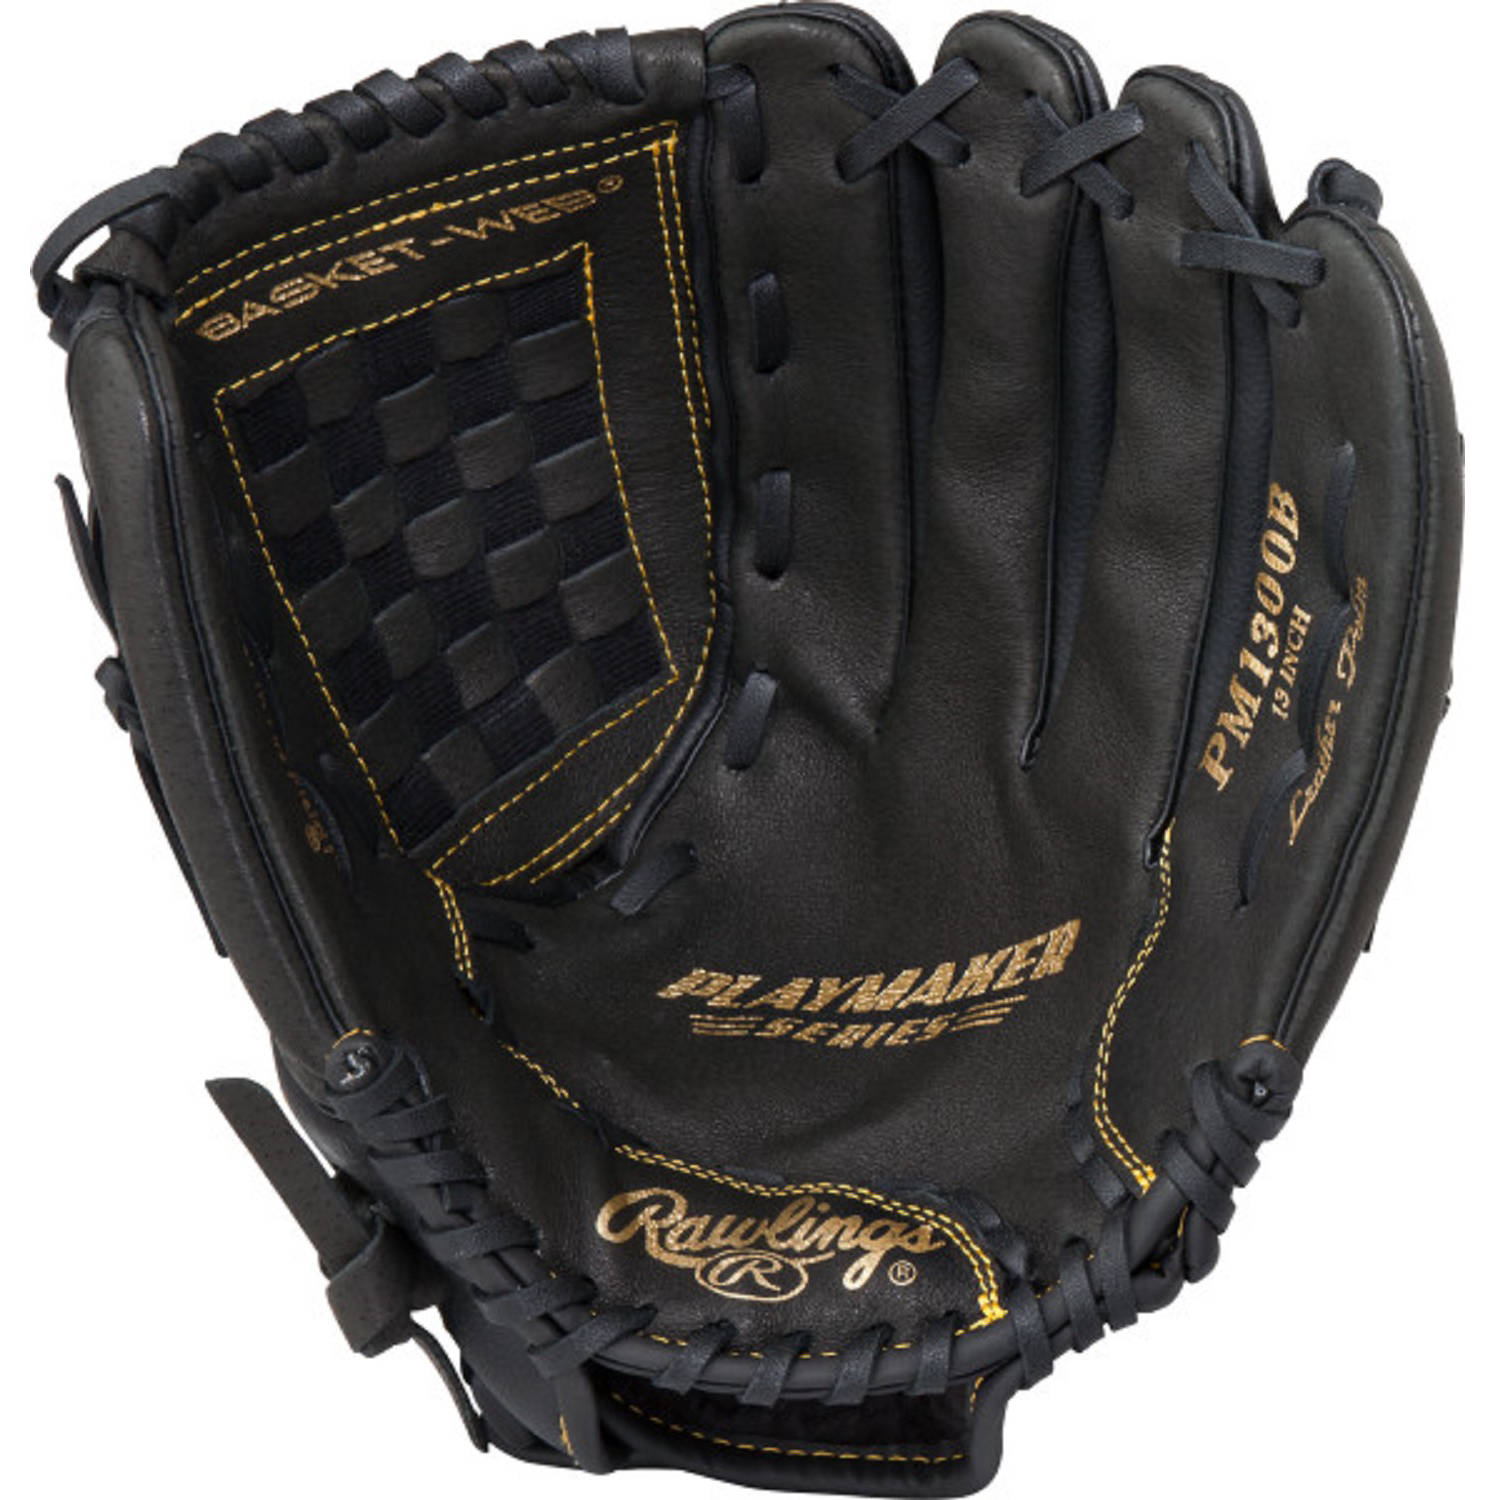 "Rawlings Playmaker 12"" Adult Baseball/Softball Glove"